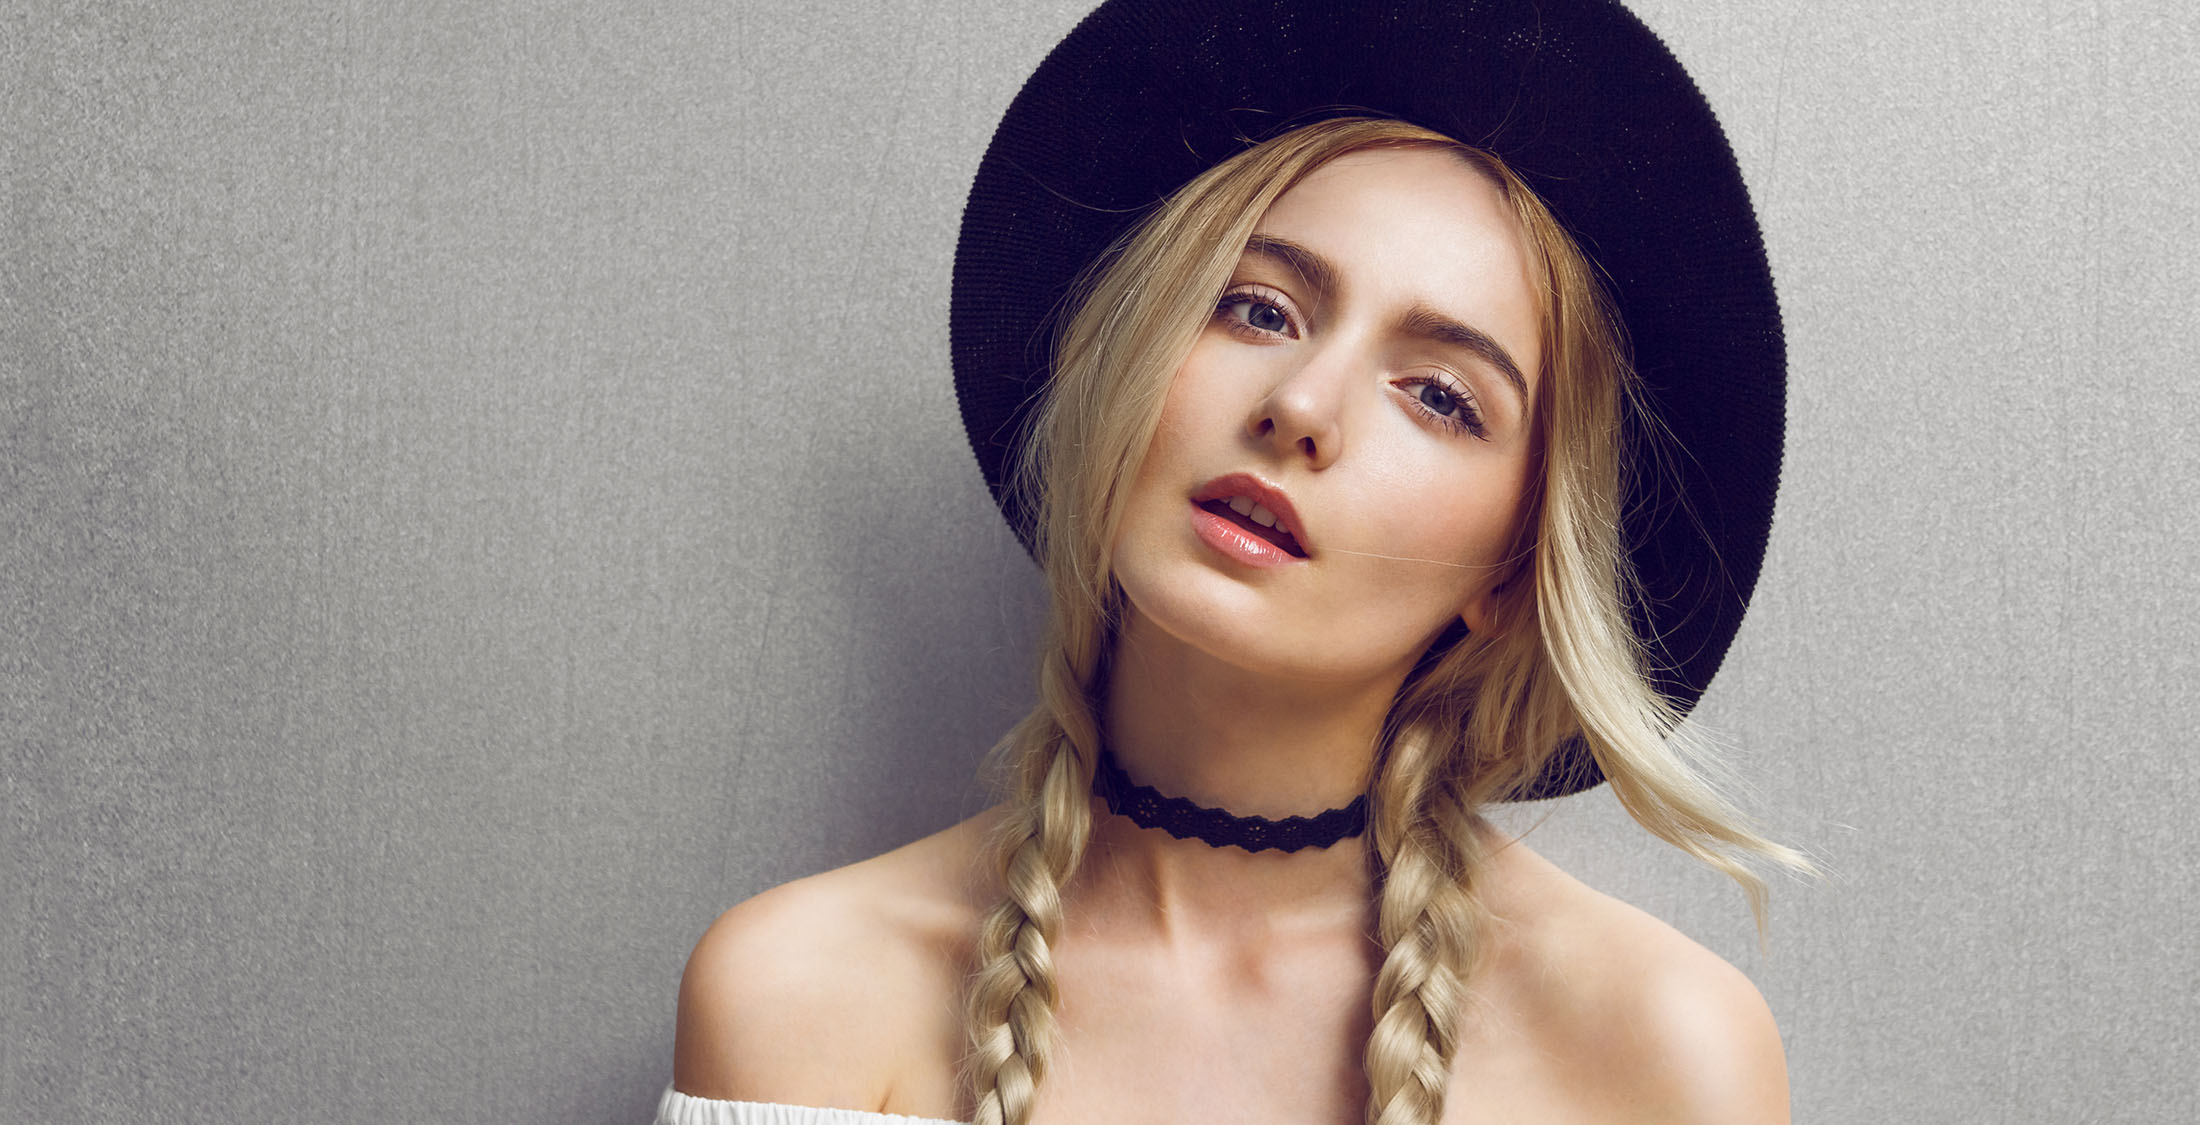 woman with black hat and choker necklace